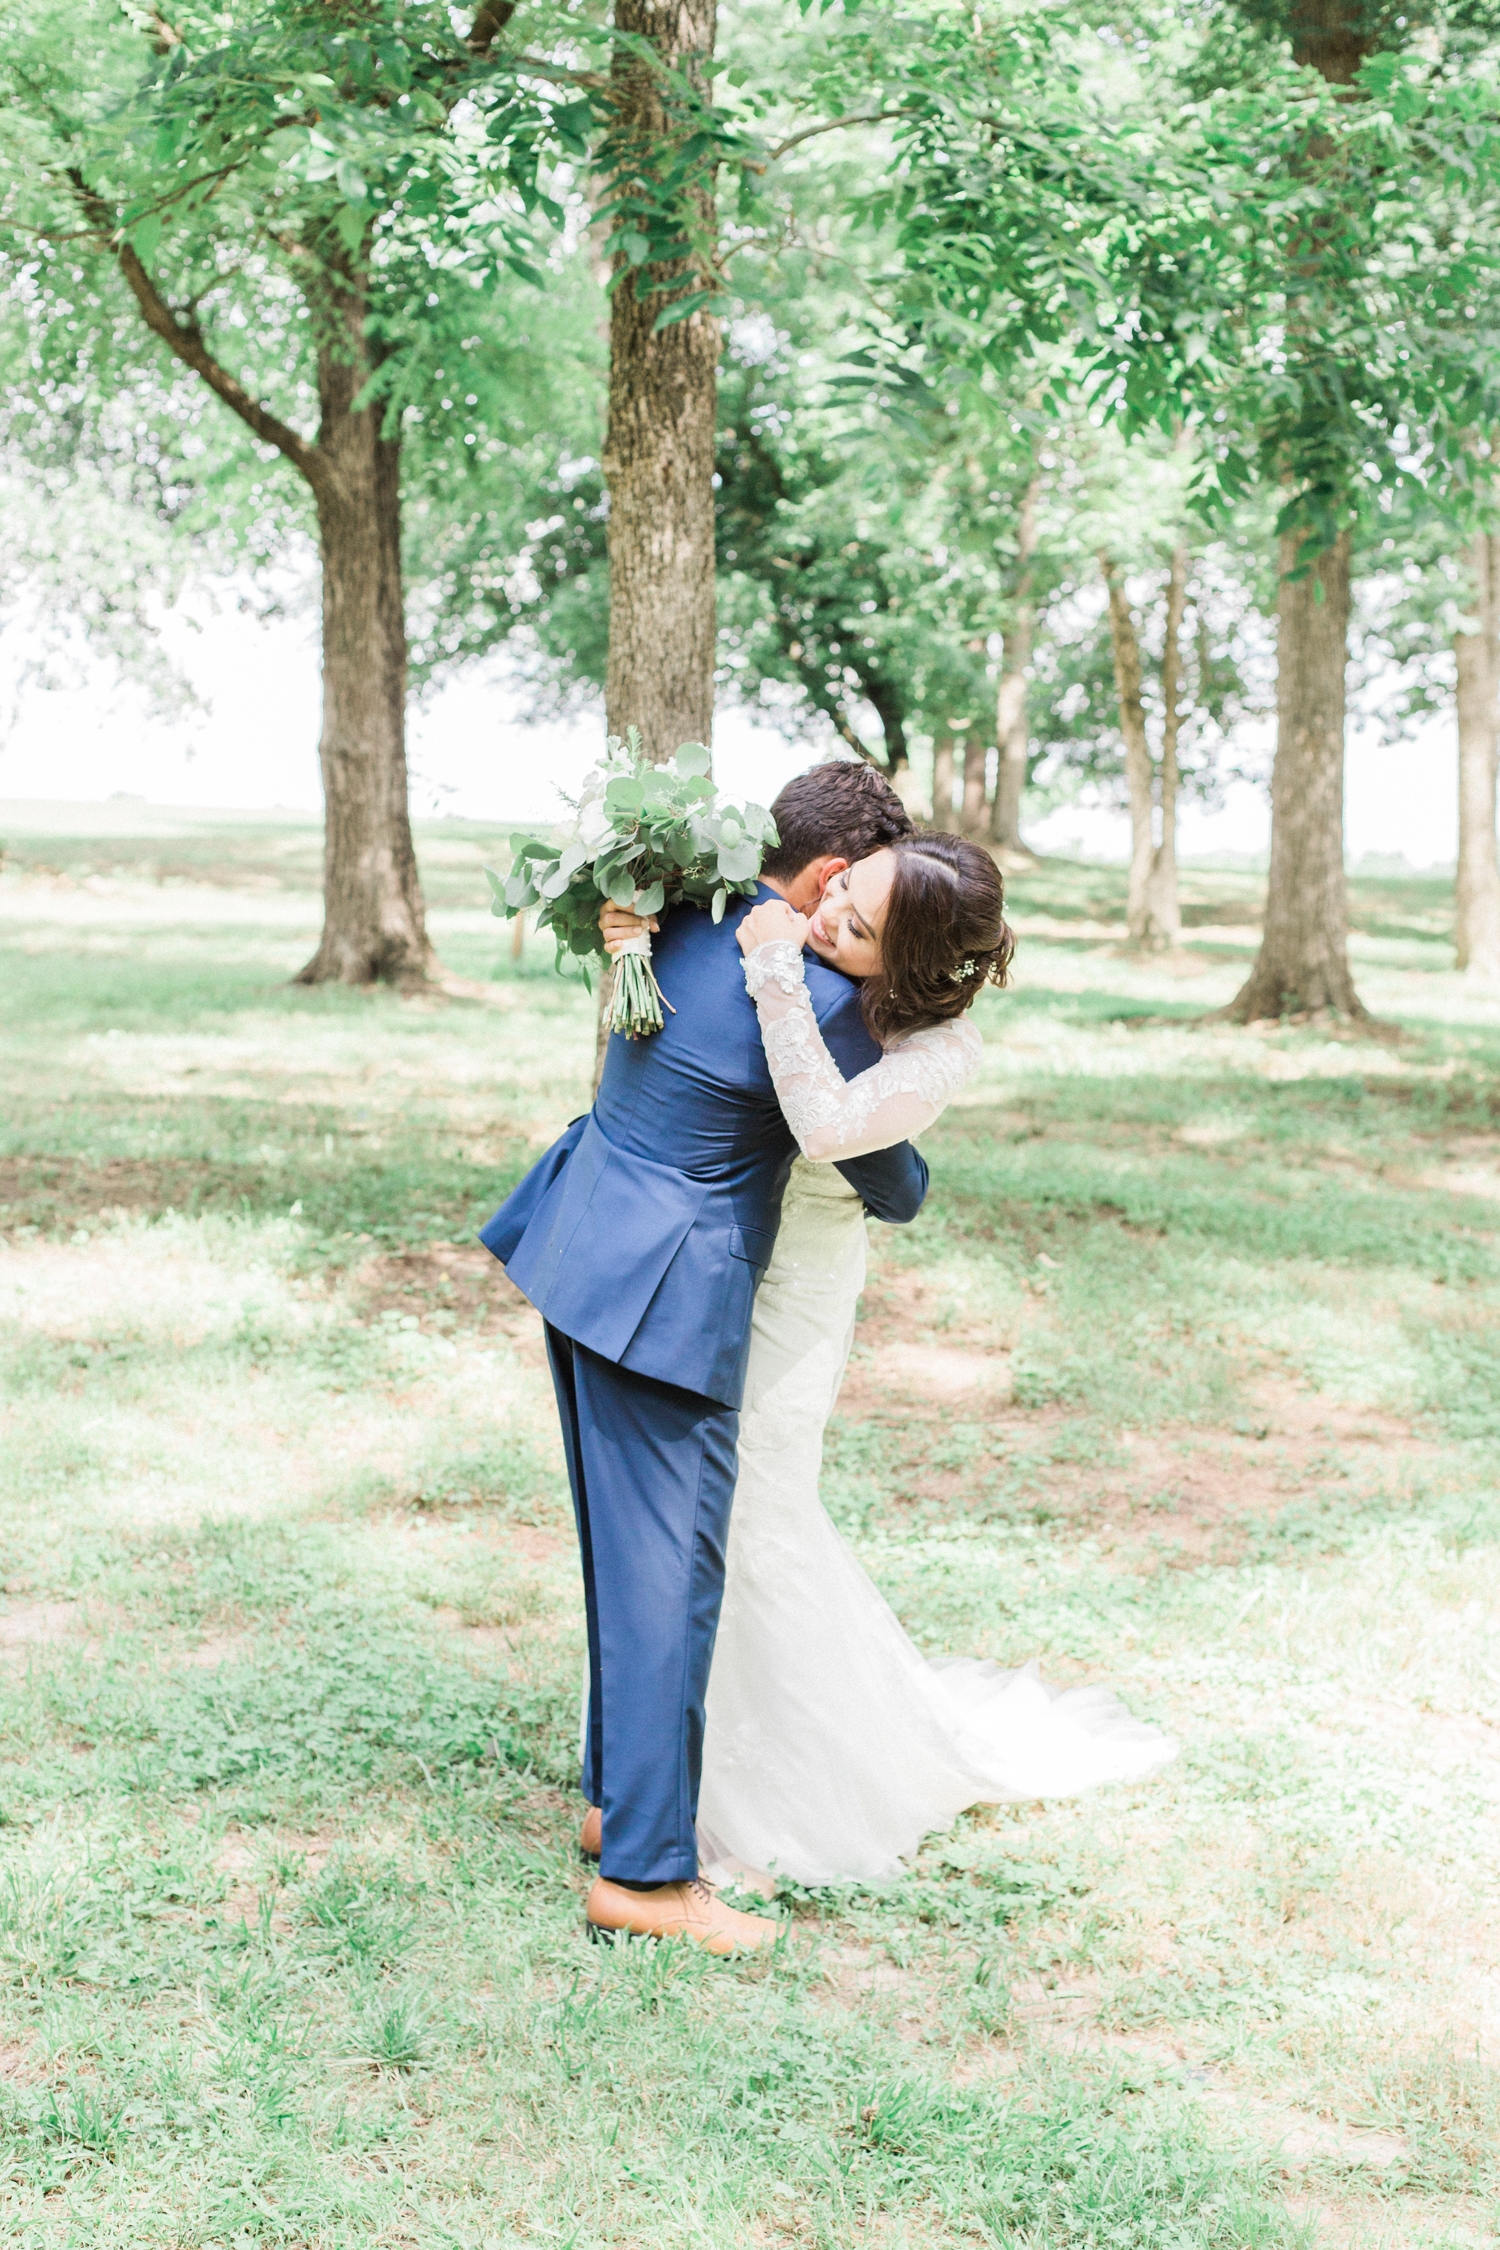 First look. Summer, outdoor, barn wedding in north Georgia at Hays McDonald Farm in Jefferson, Georgia. Photo by Kesia Marie Photography- Fine Art Wedding Photographer.